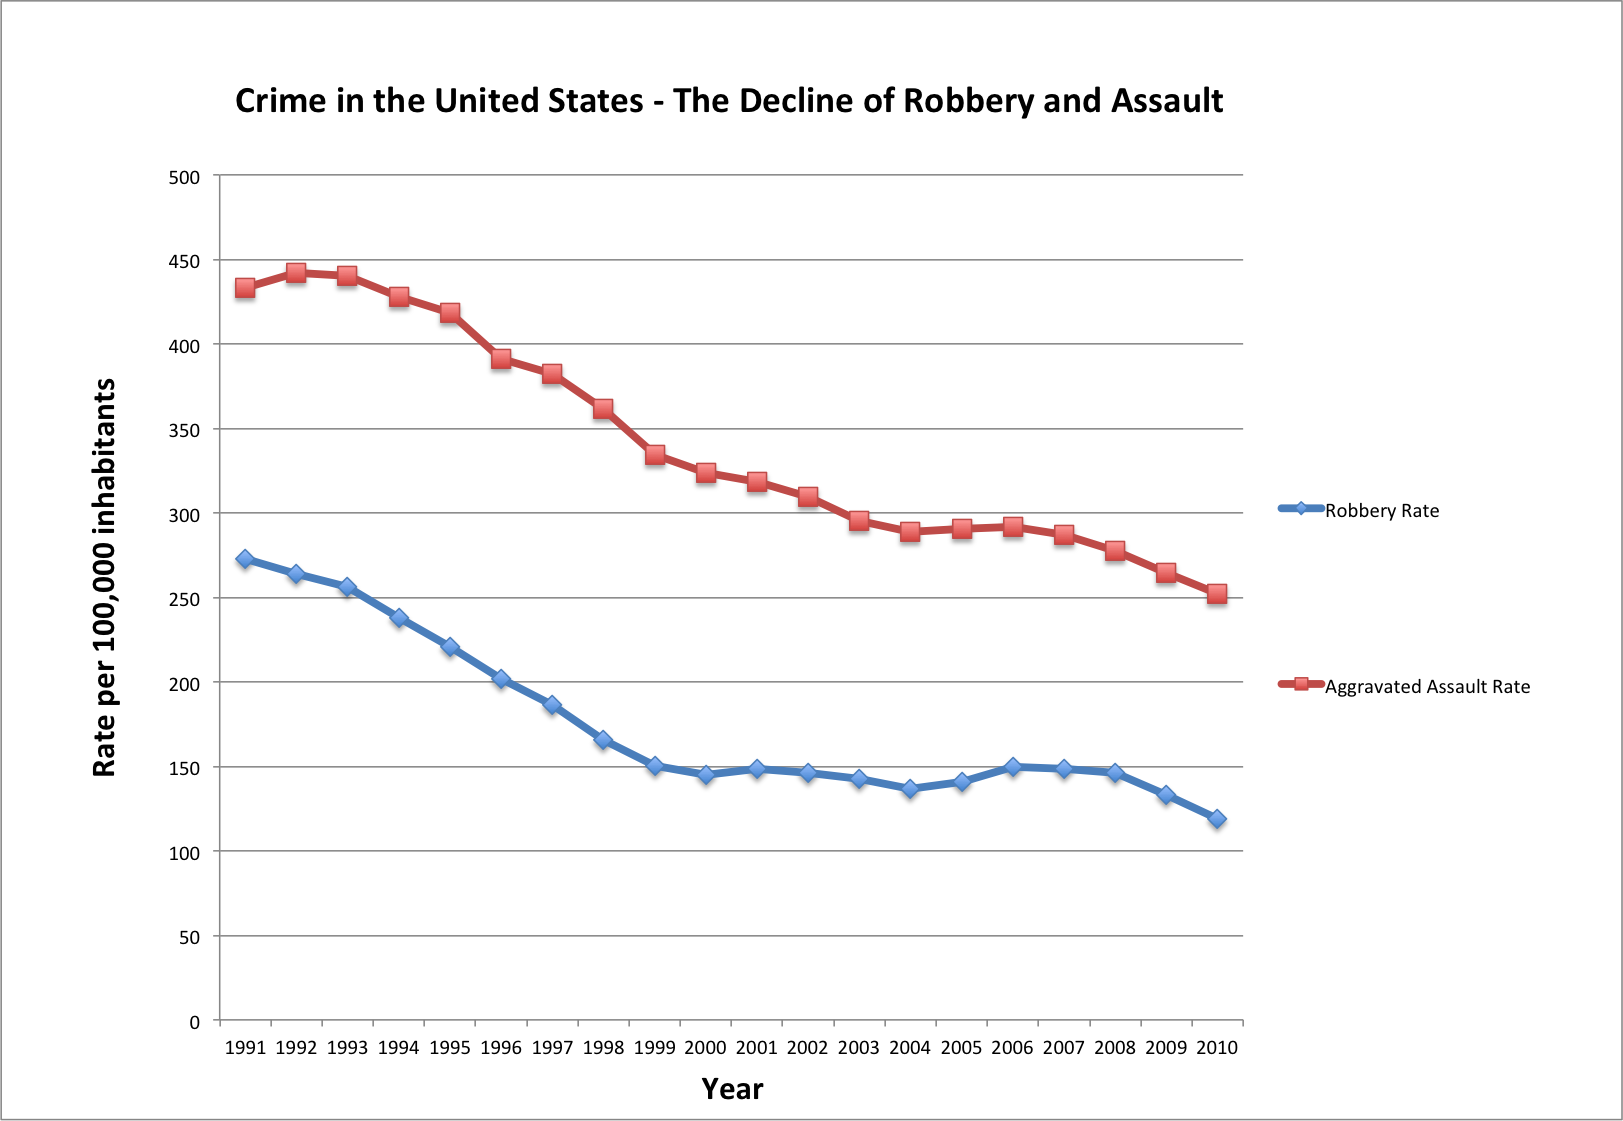 Decline of Robbery and Assault (1)